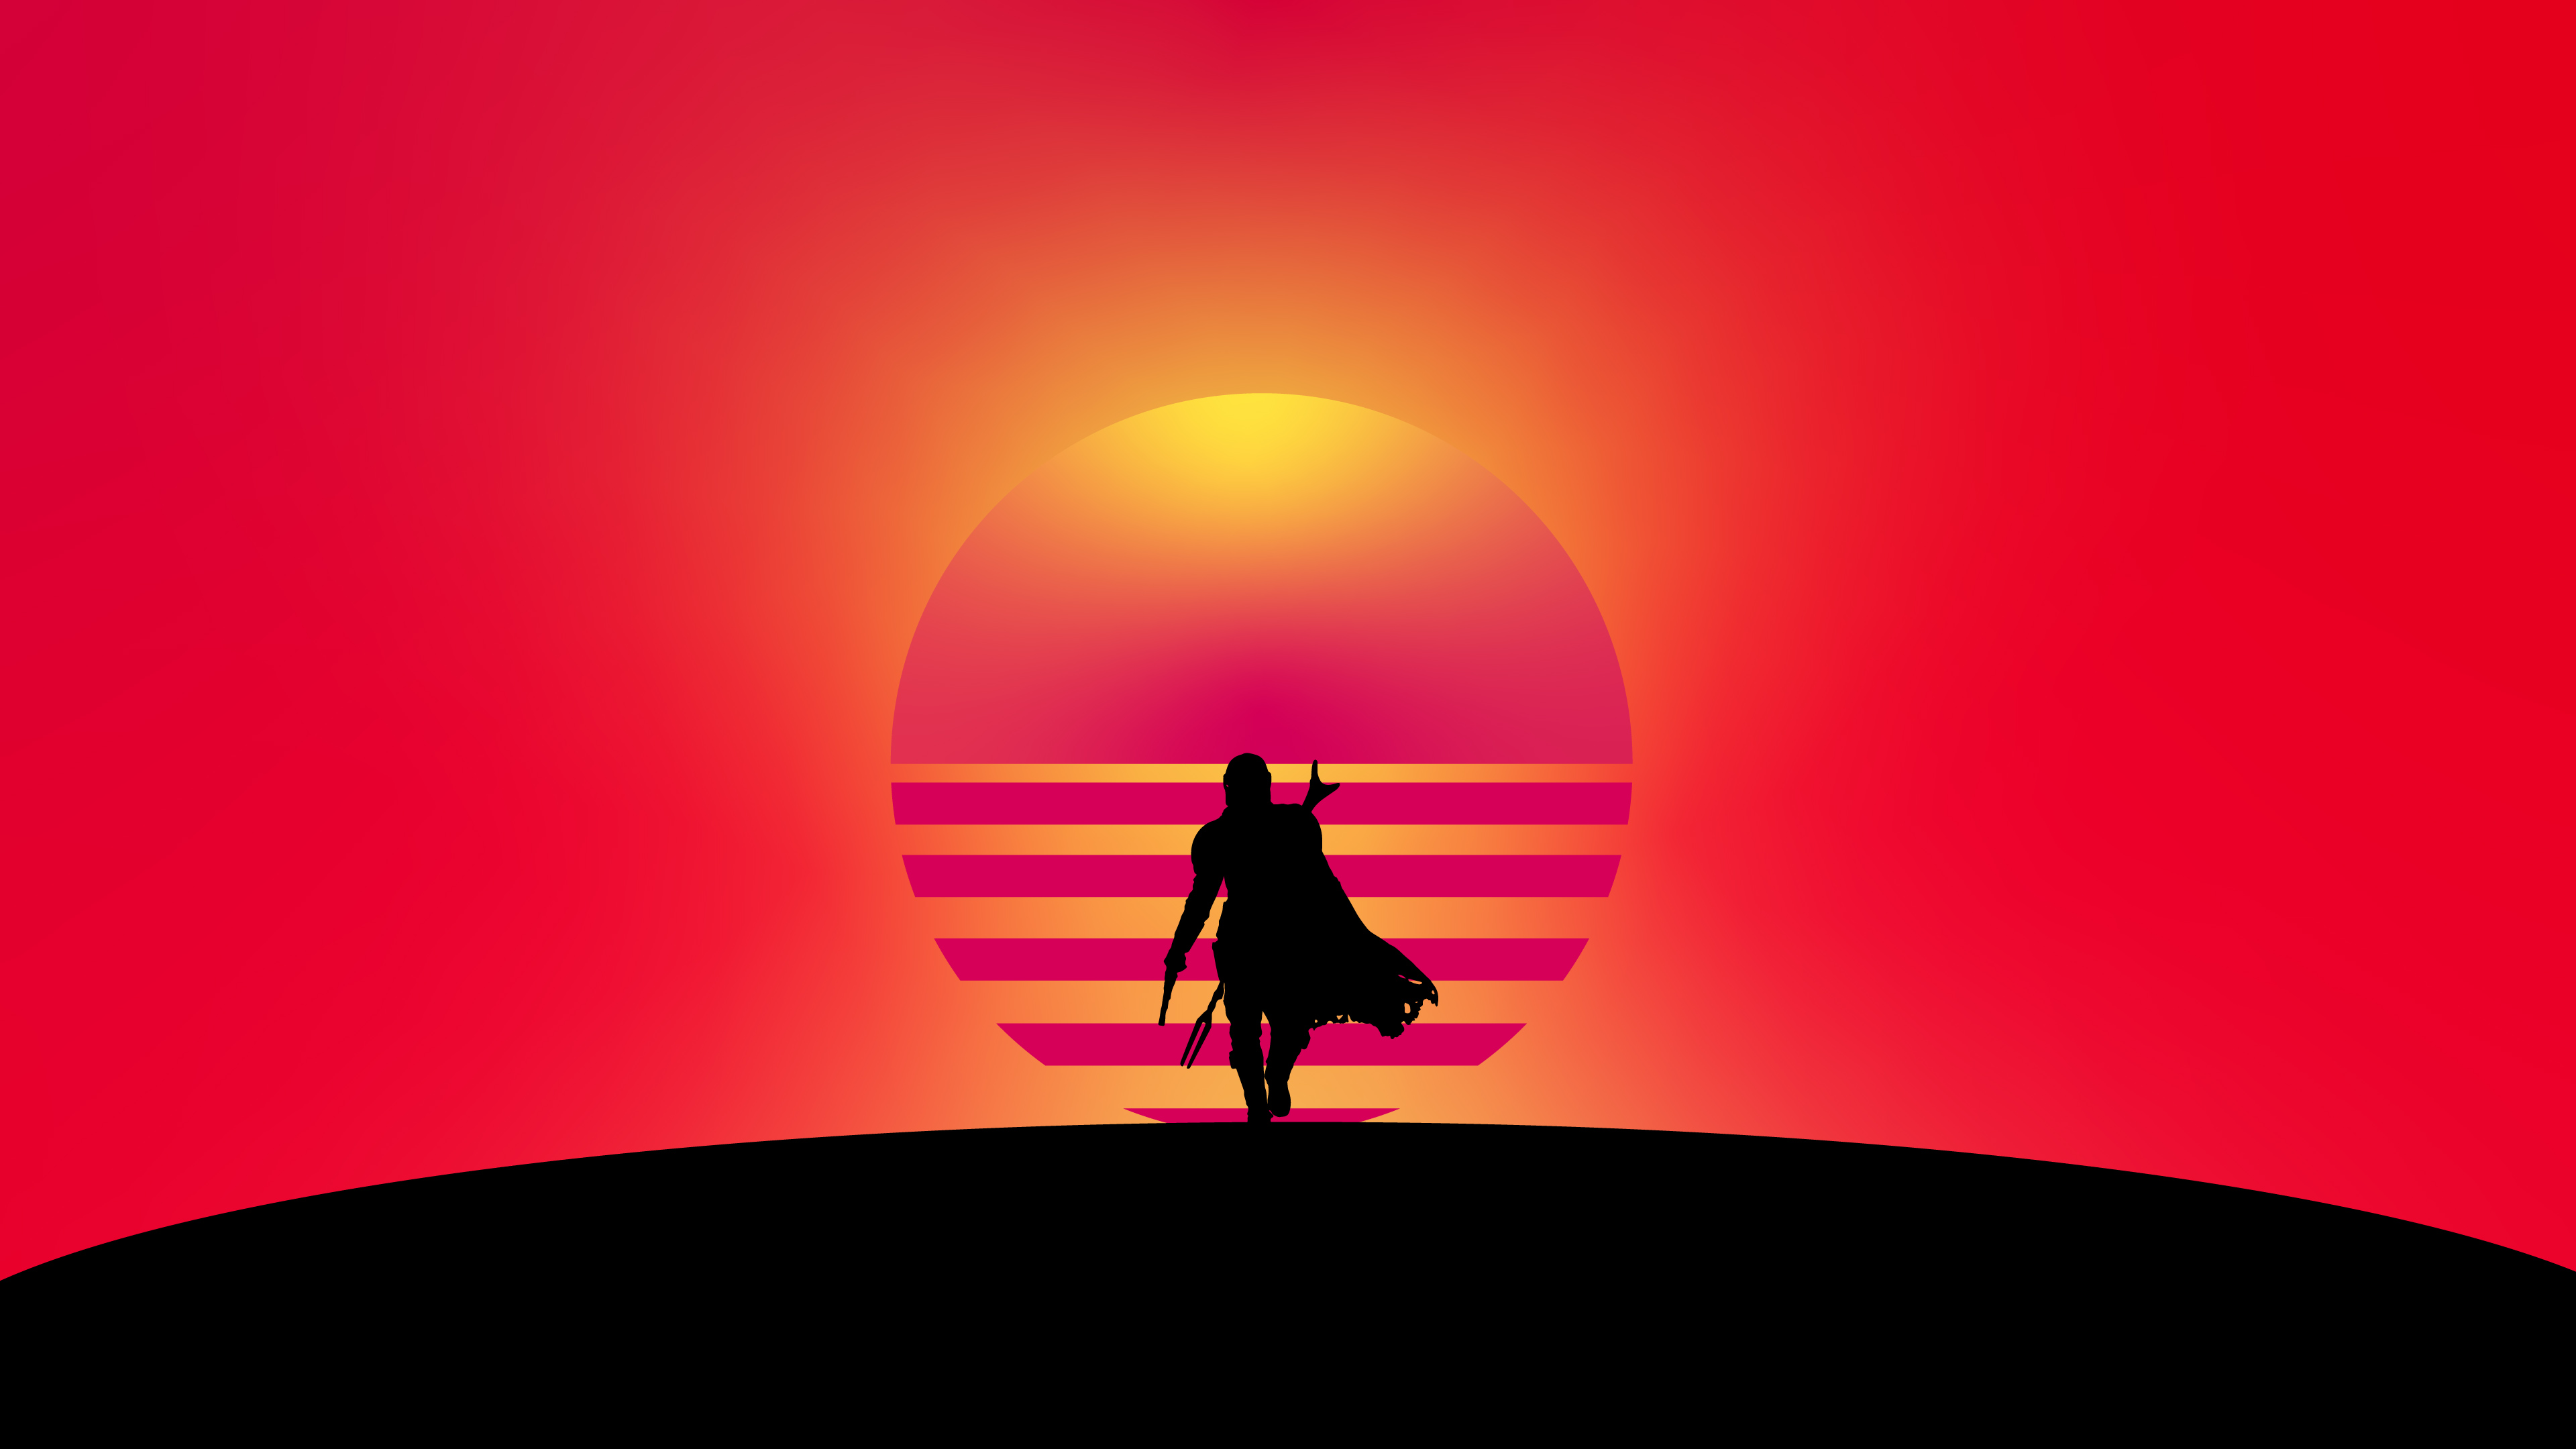 The Mandalorian Minimal 4k Hd Tv Shows 4k Wallpapers Images Backgrounds Photos And Pictures